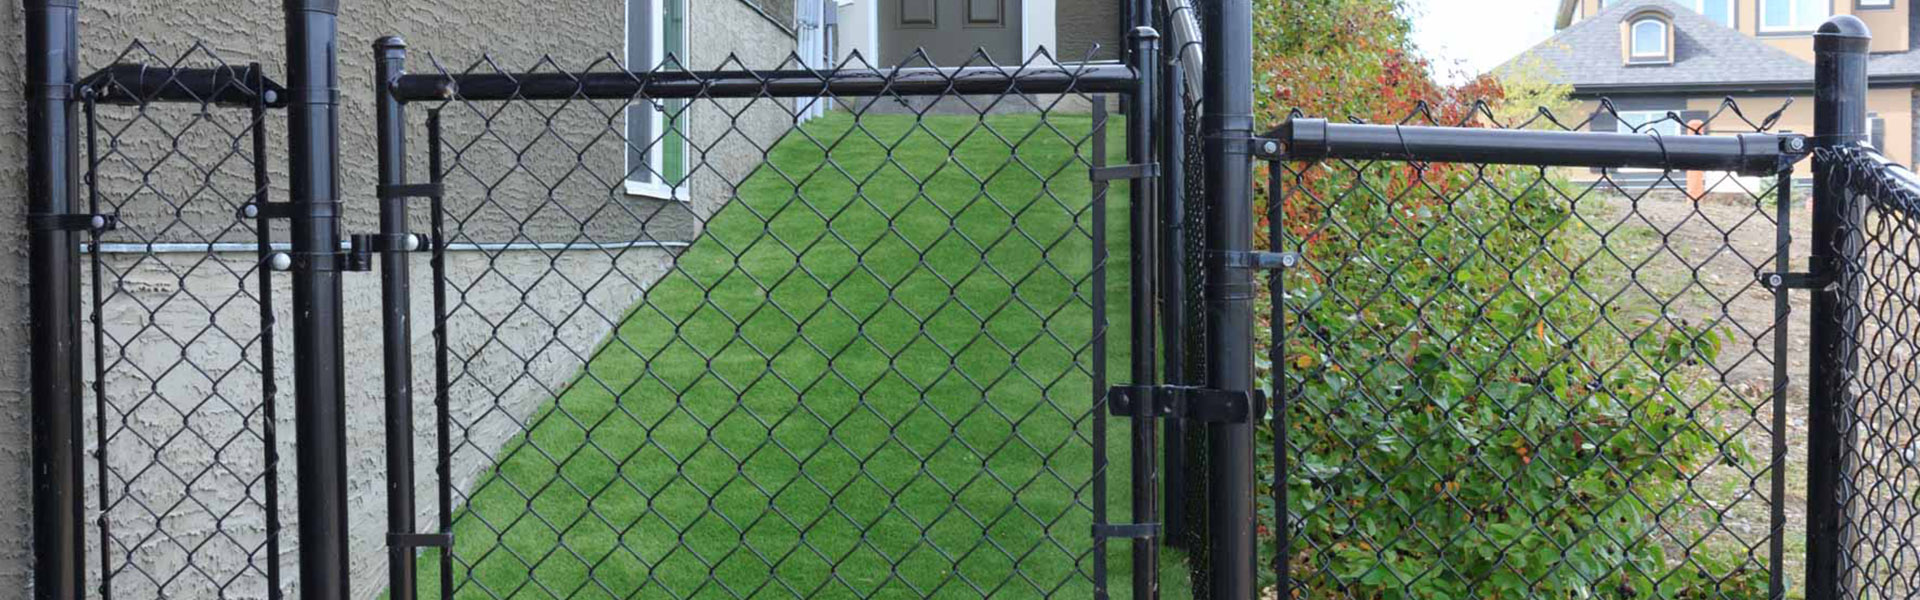 Low maintenance chain link fencing constructed to frame in a newly landscaped yard